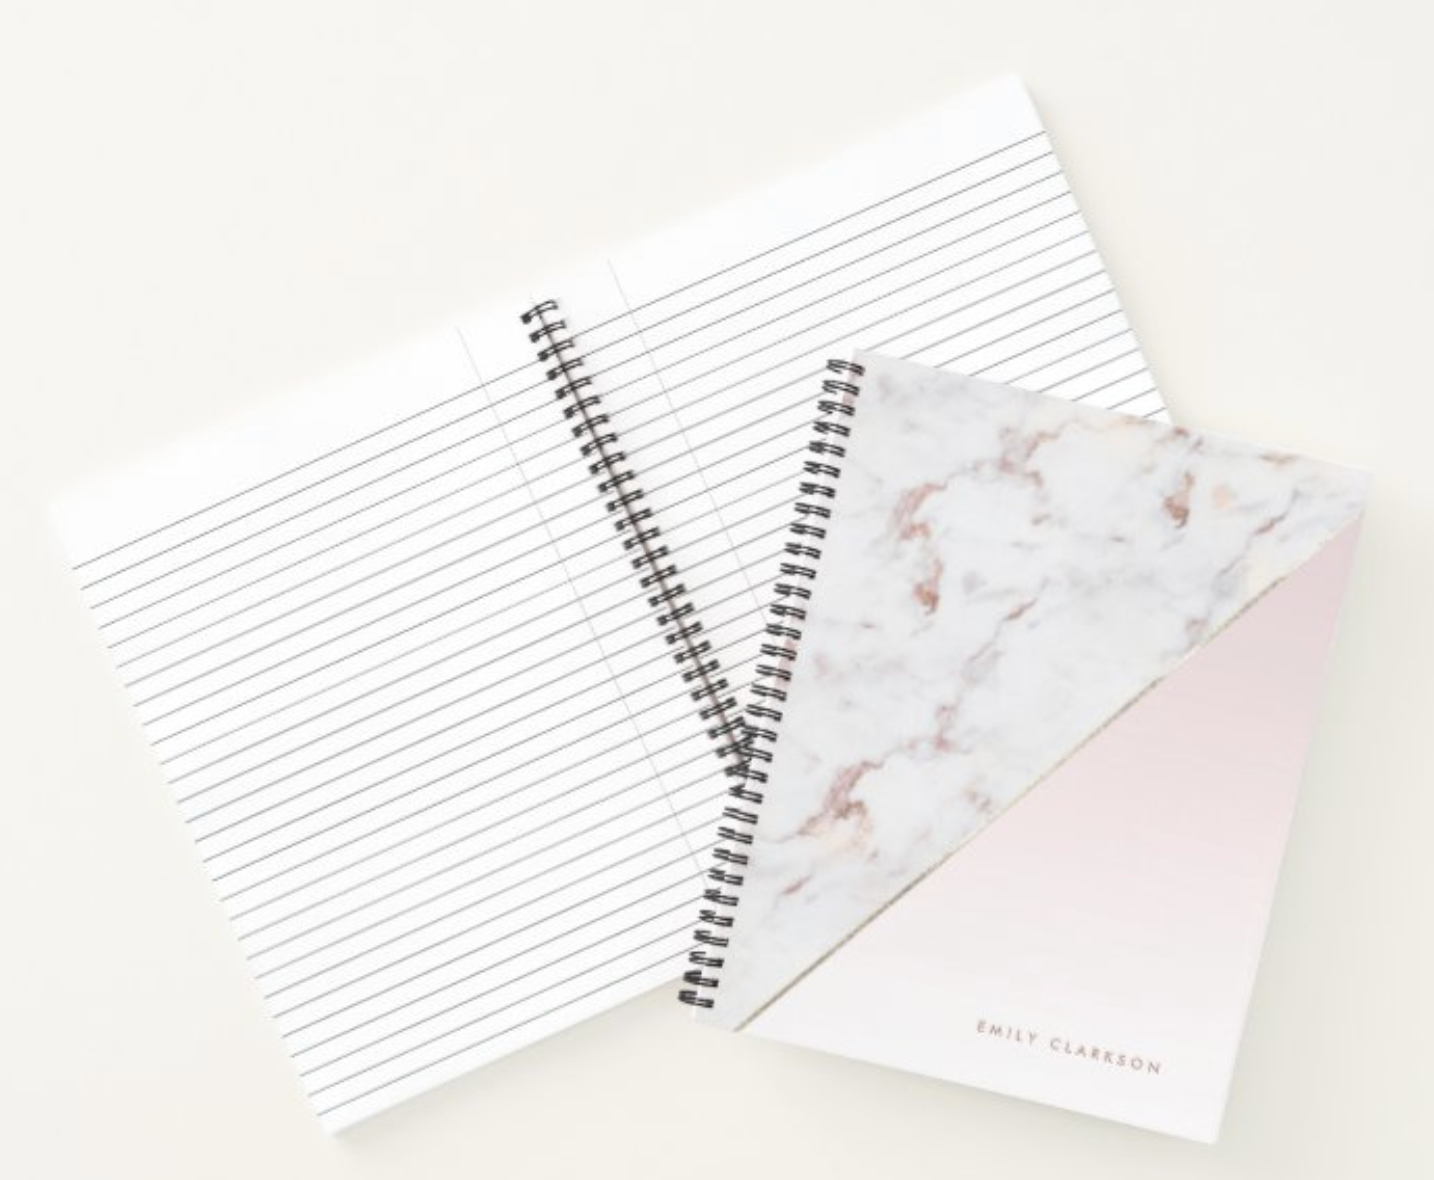 Two notebooks, one with a pink and marble cover and one opened to show the line spacing